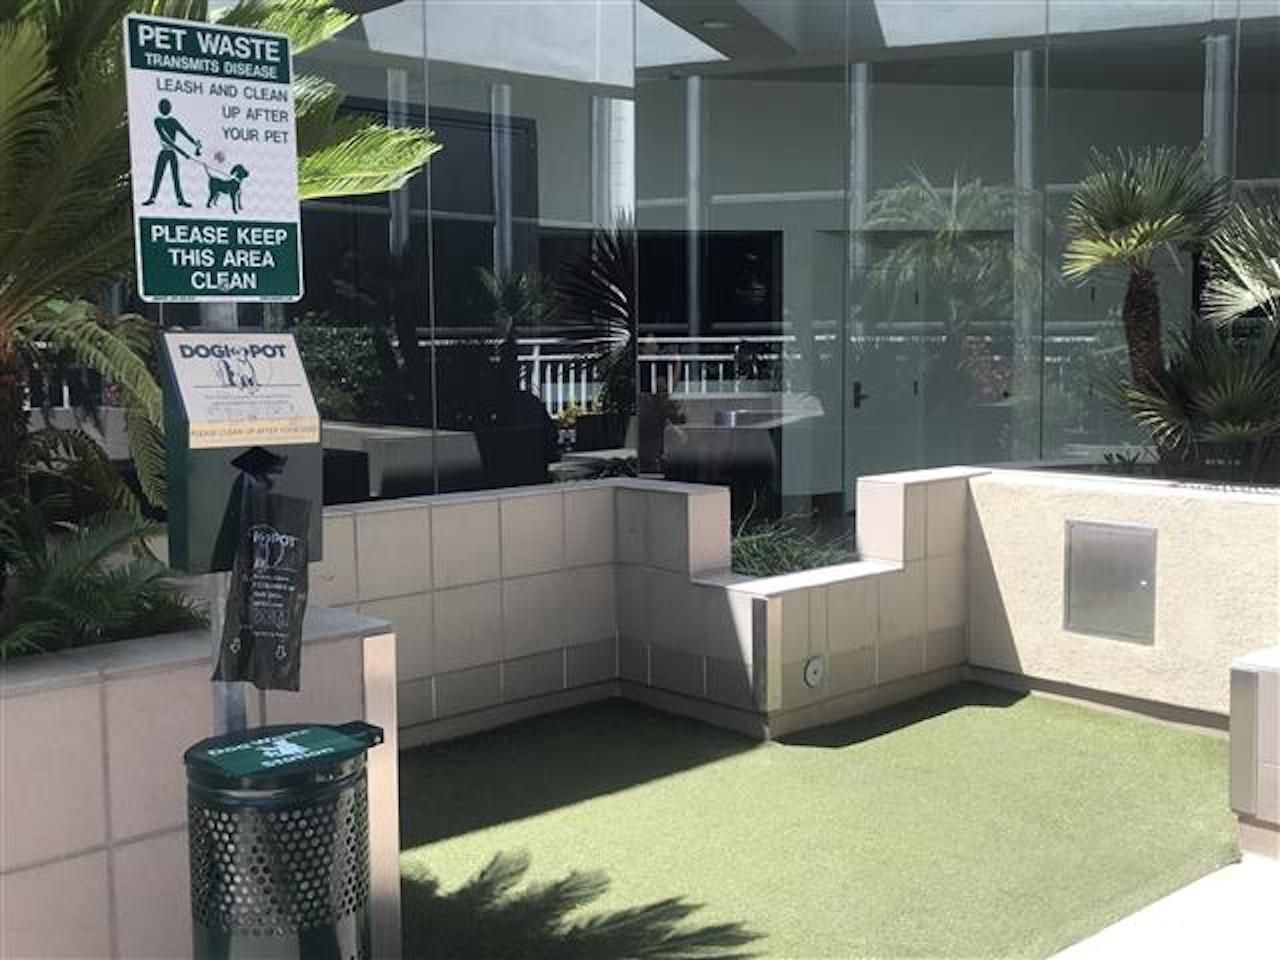 Pet relief area at LAX